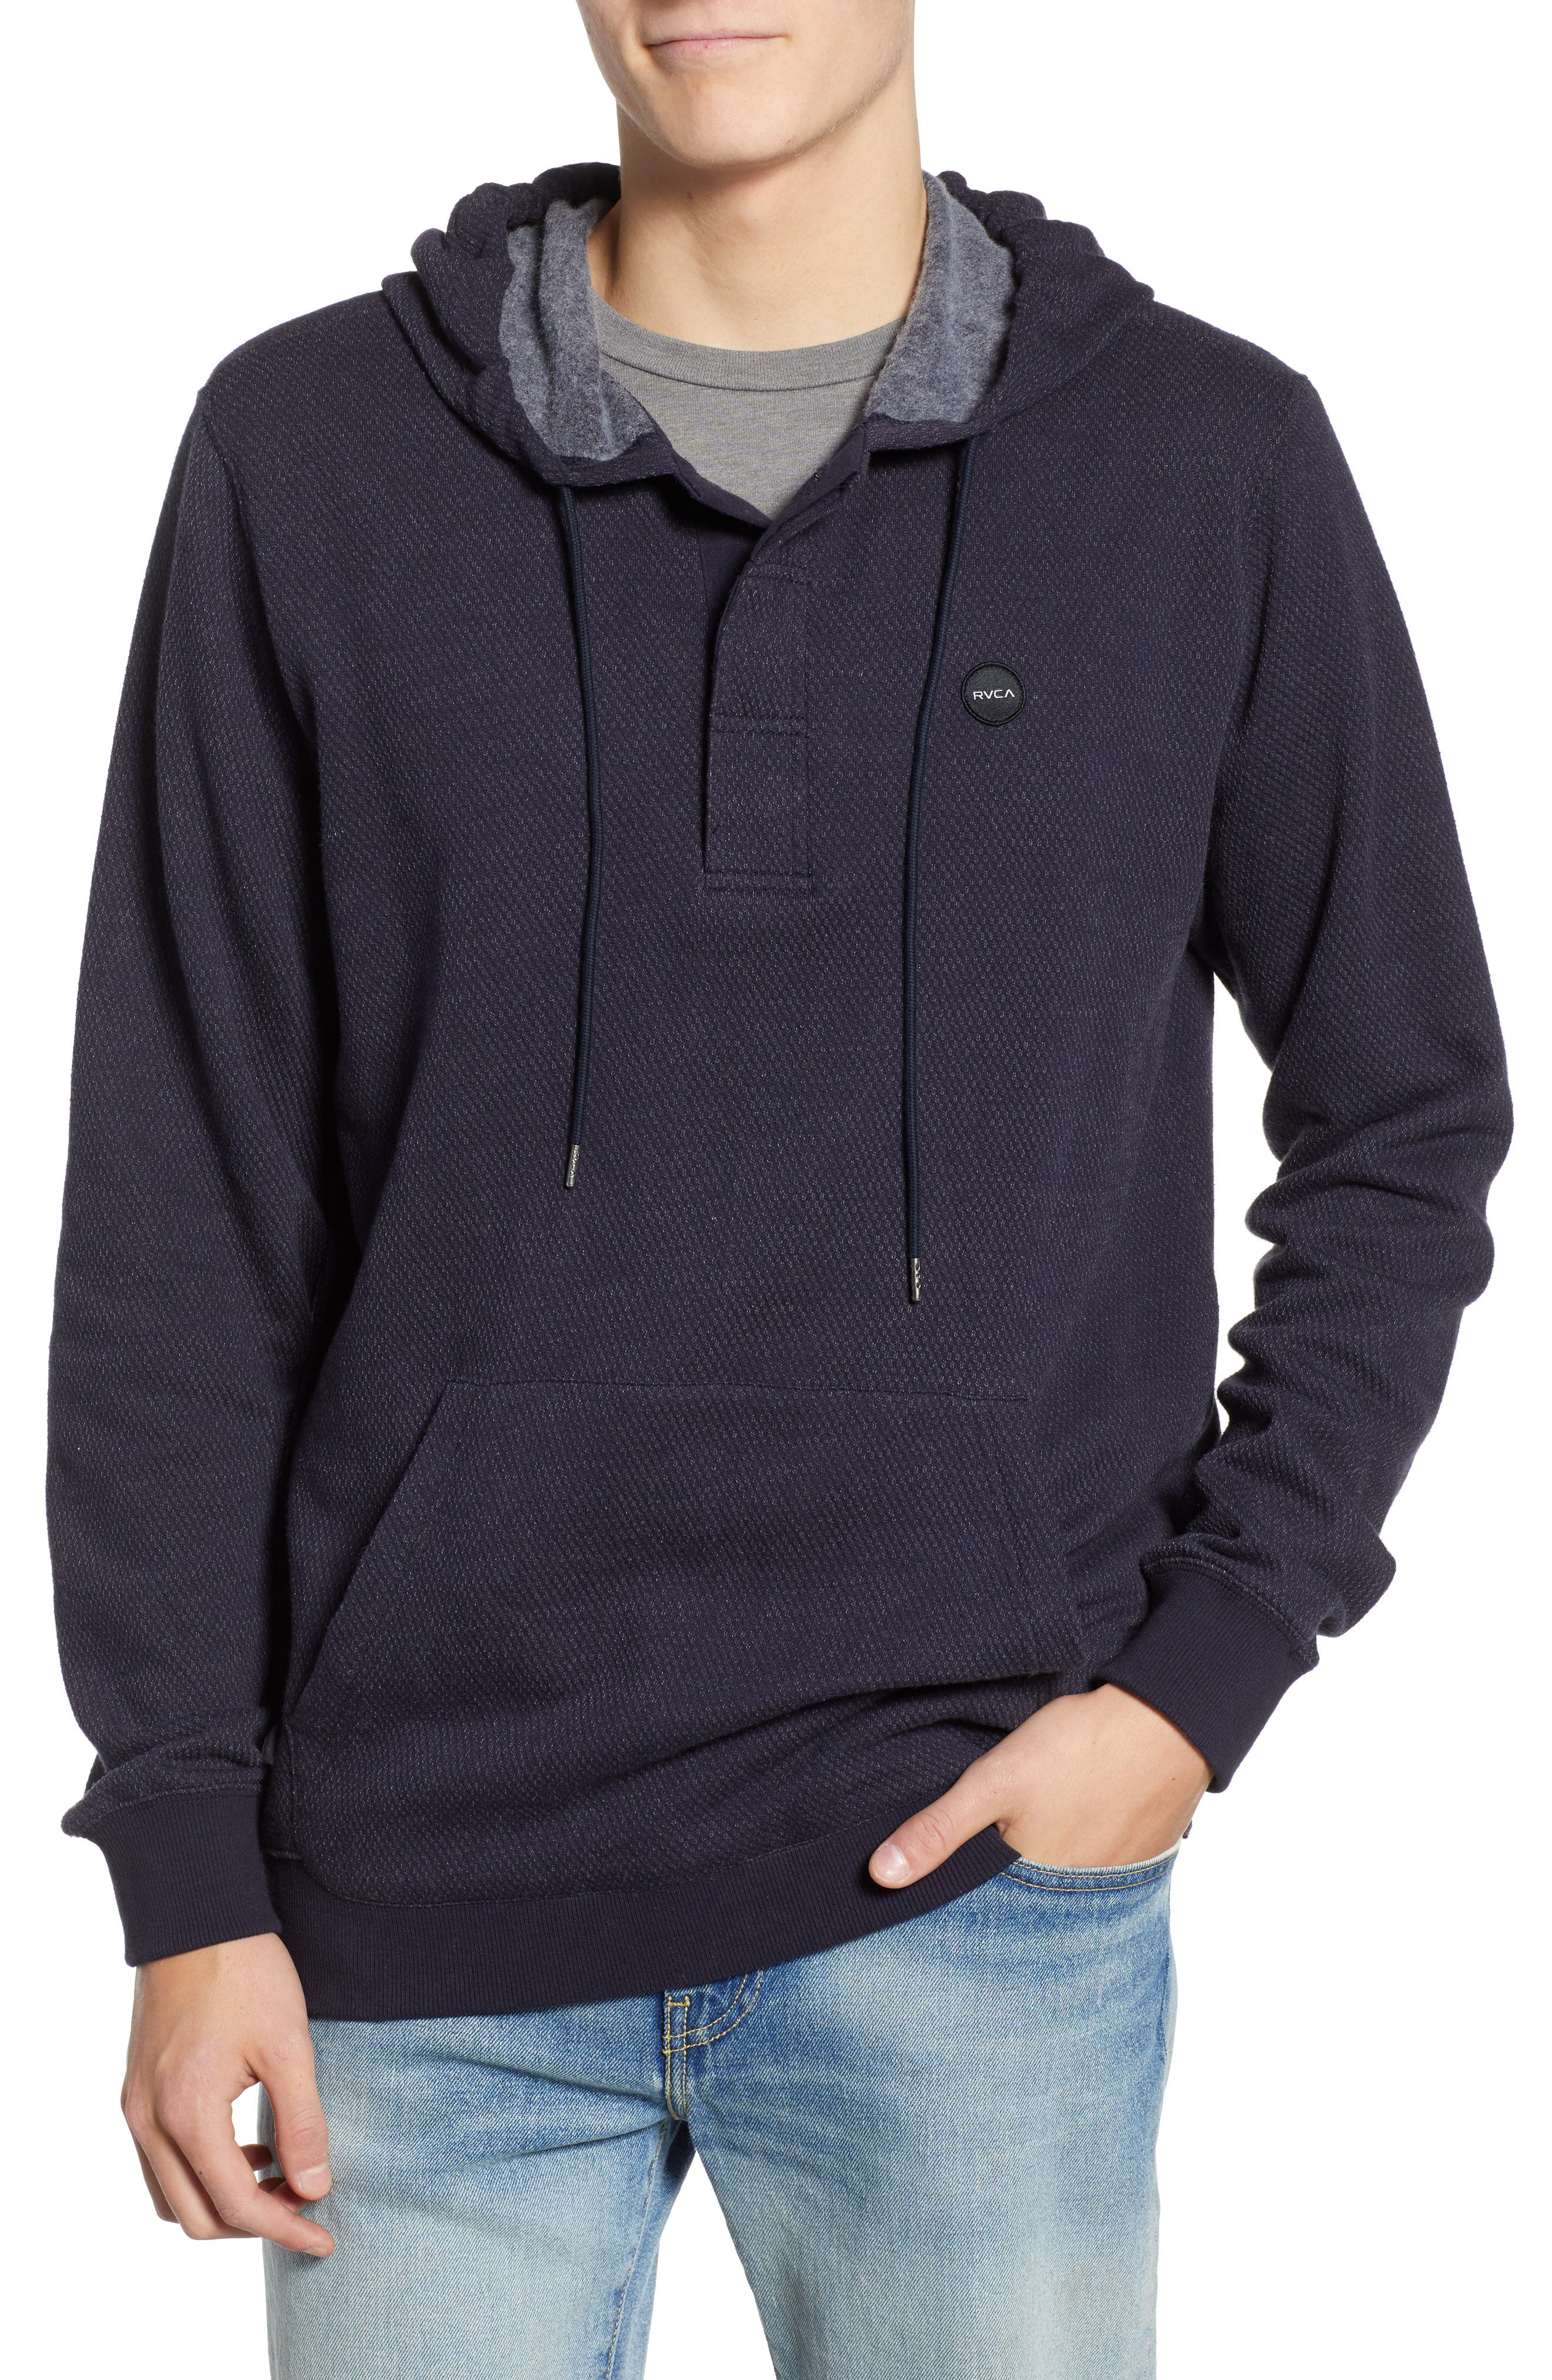 Lupo Pullover Hoodie,                             Main thumbnail 1, color,                             NEW NAVY